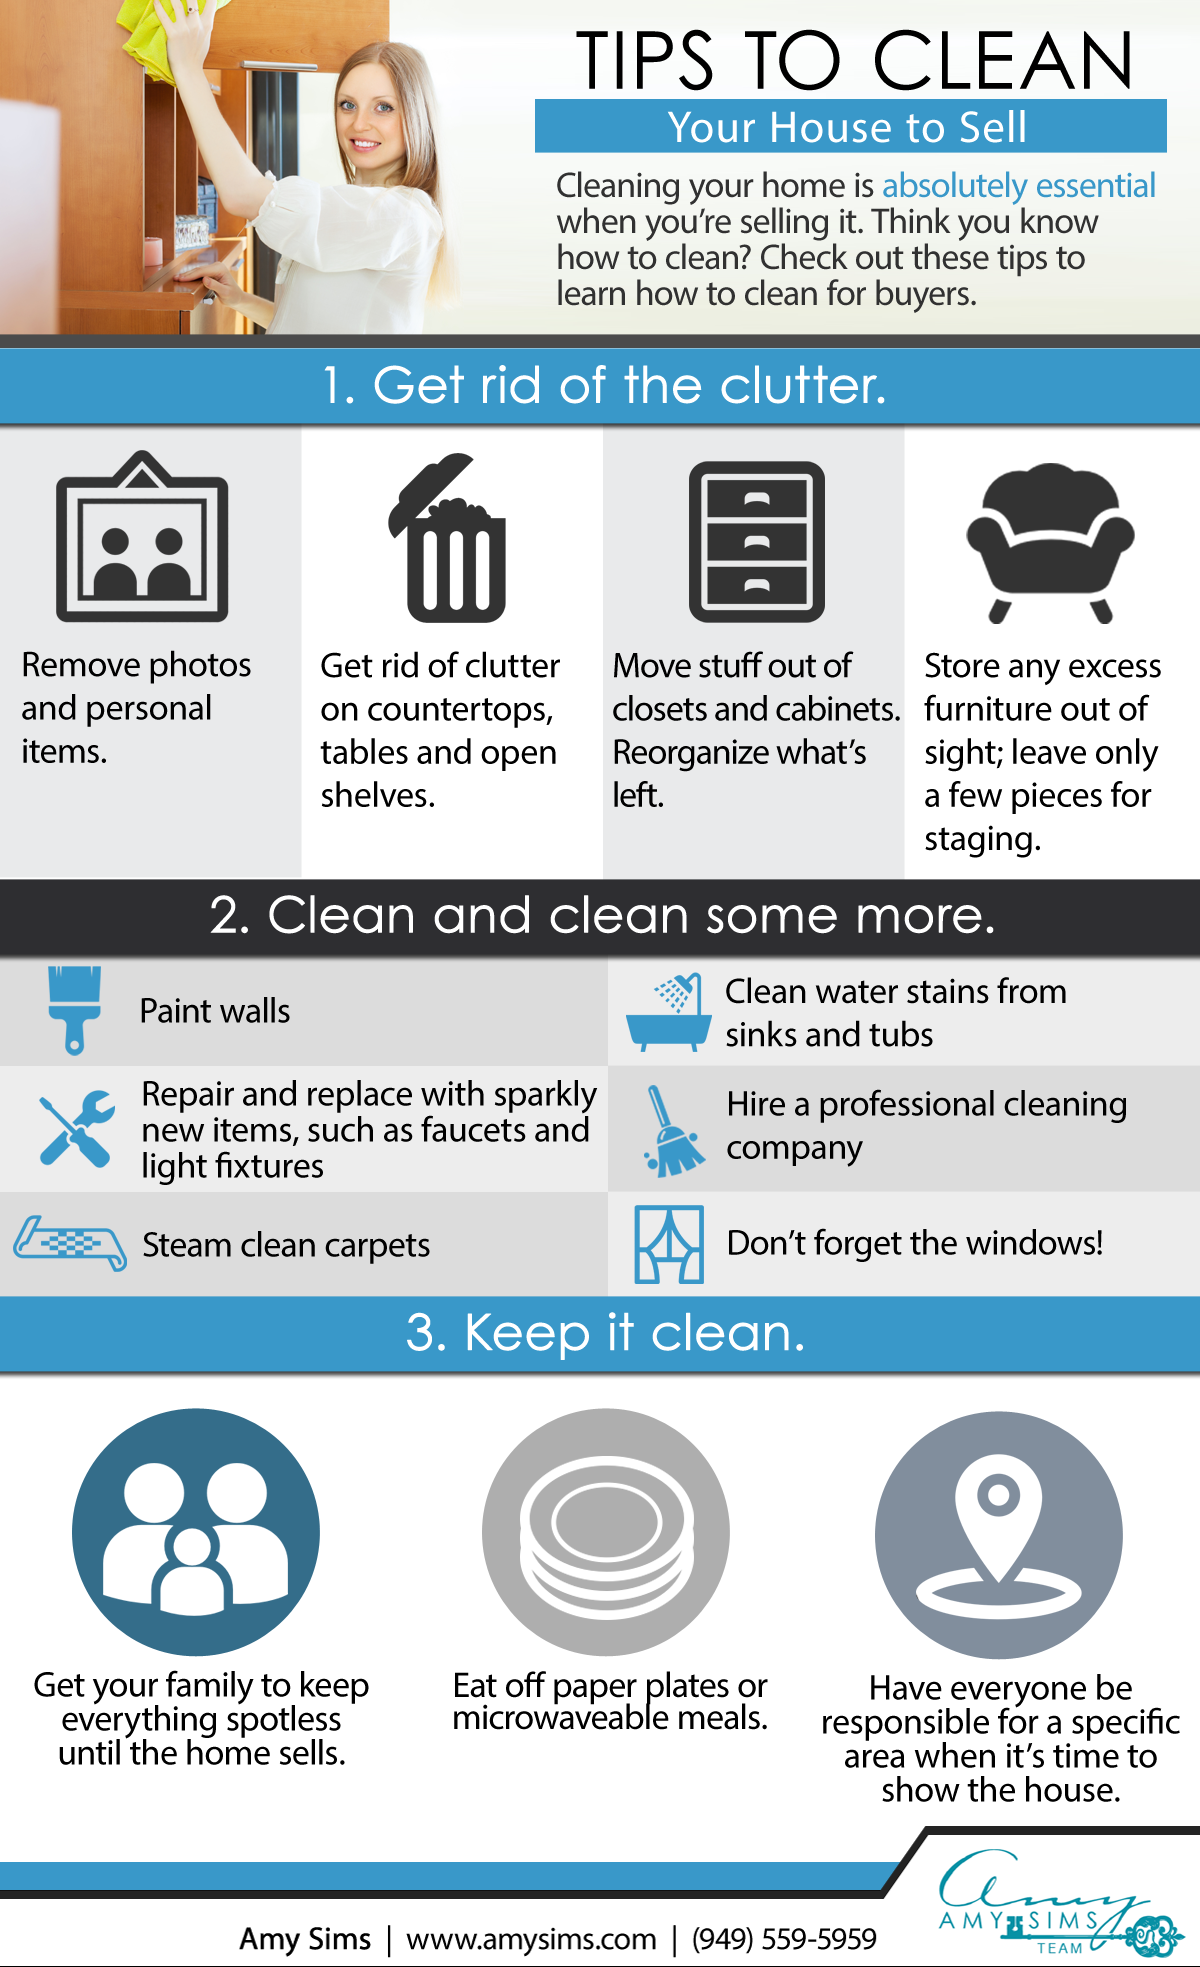 Tips to Clean Your House Image